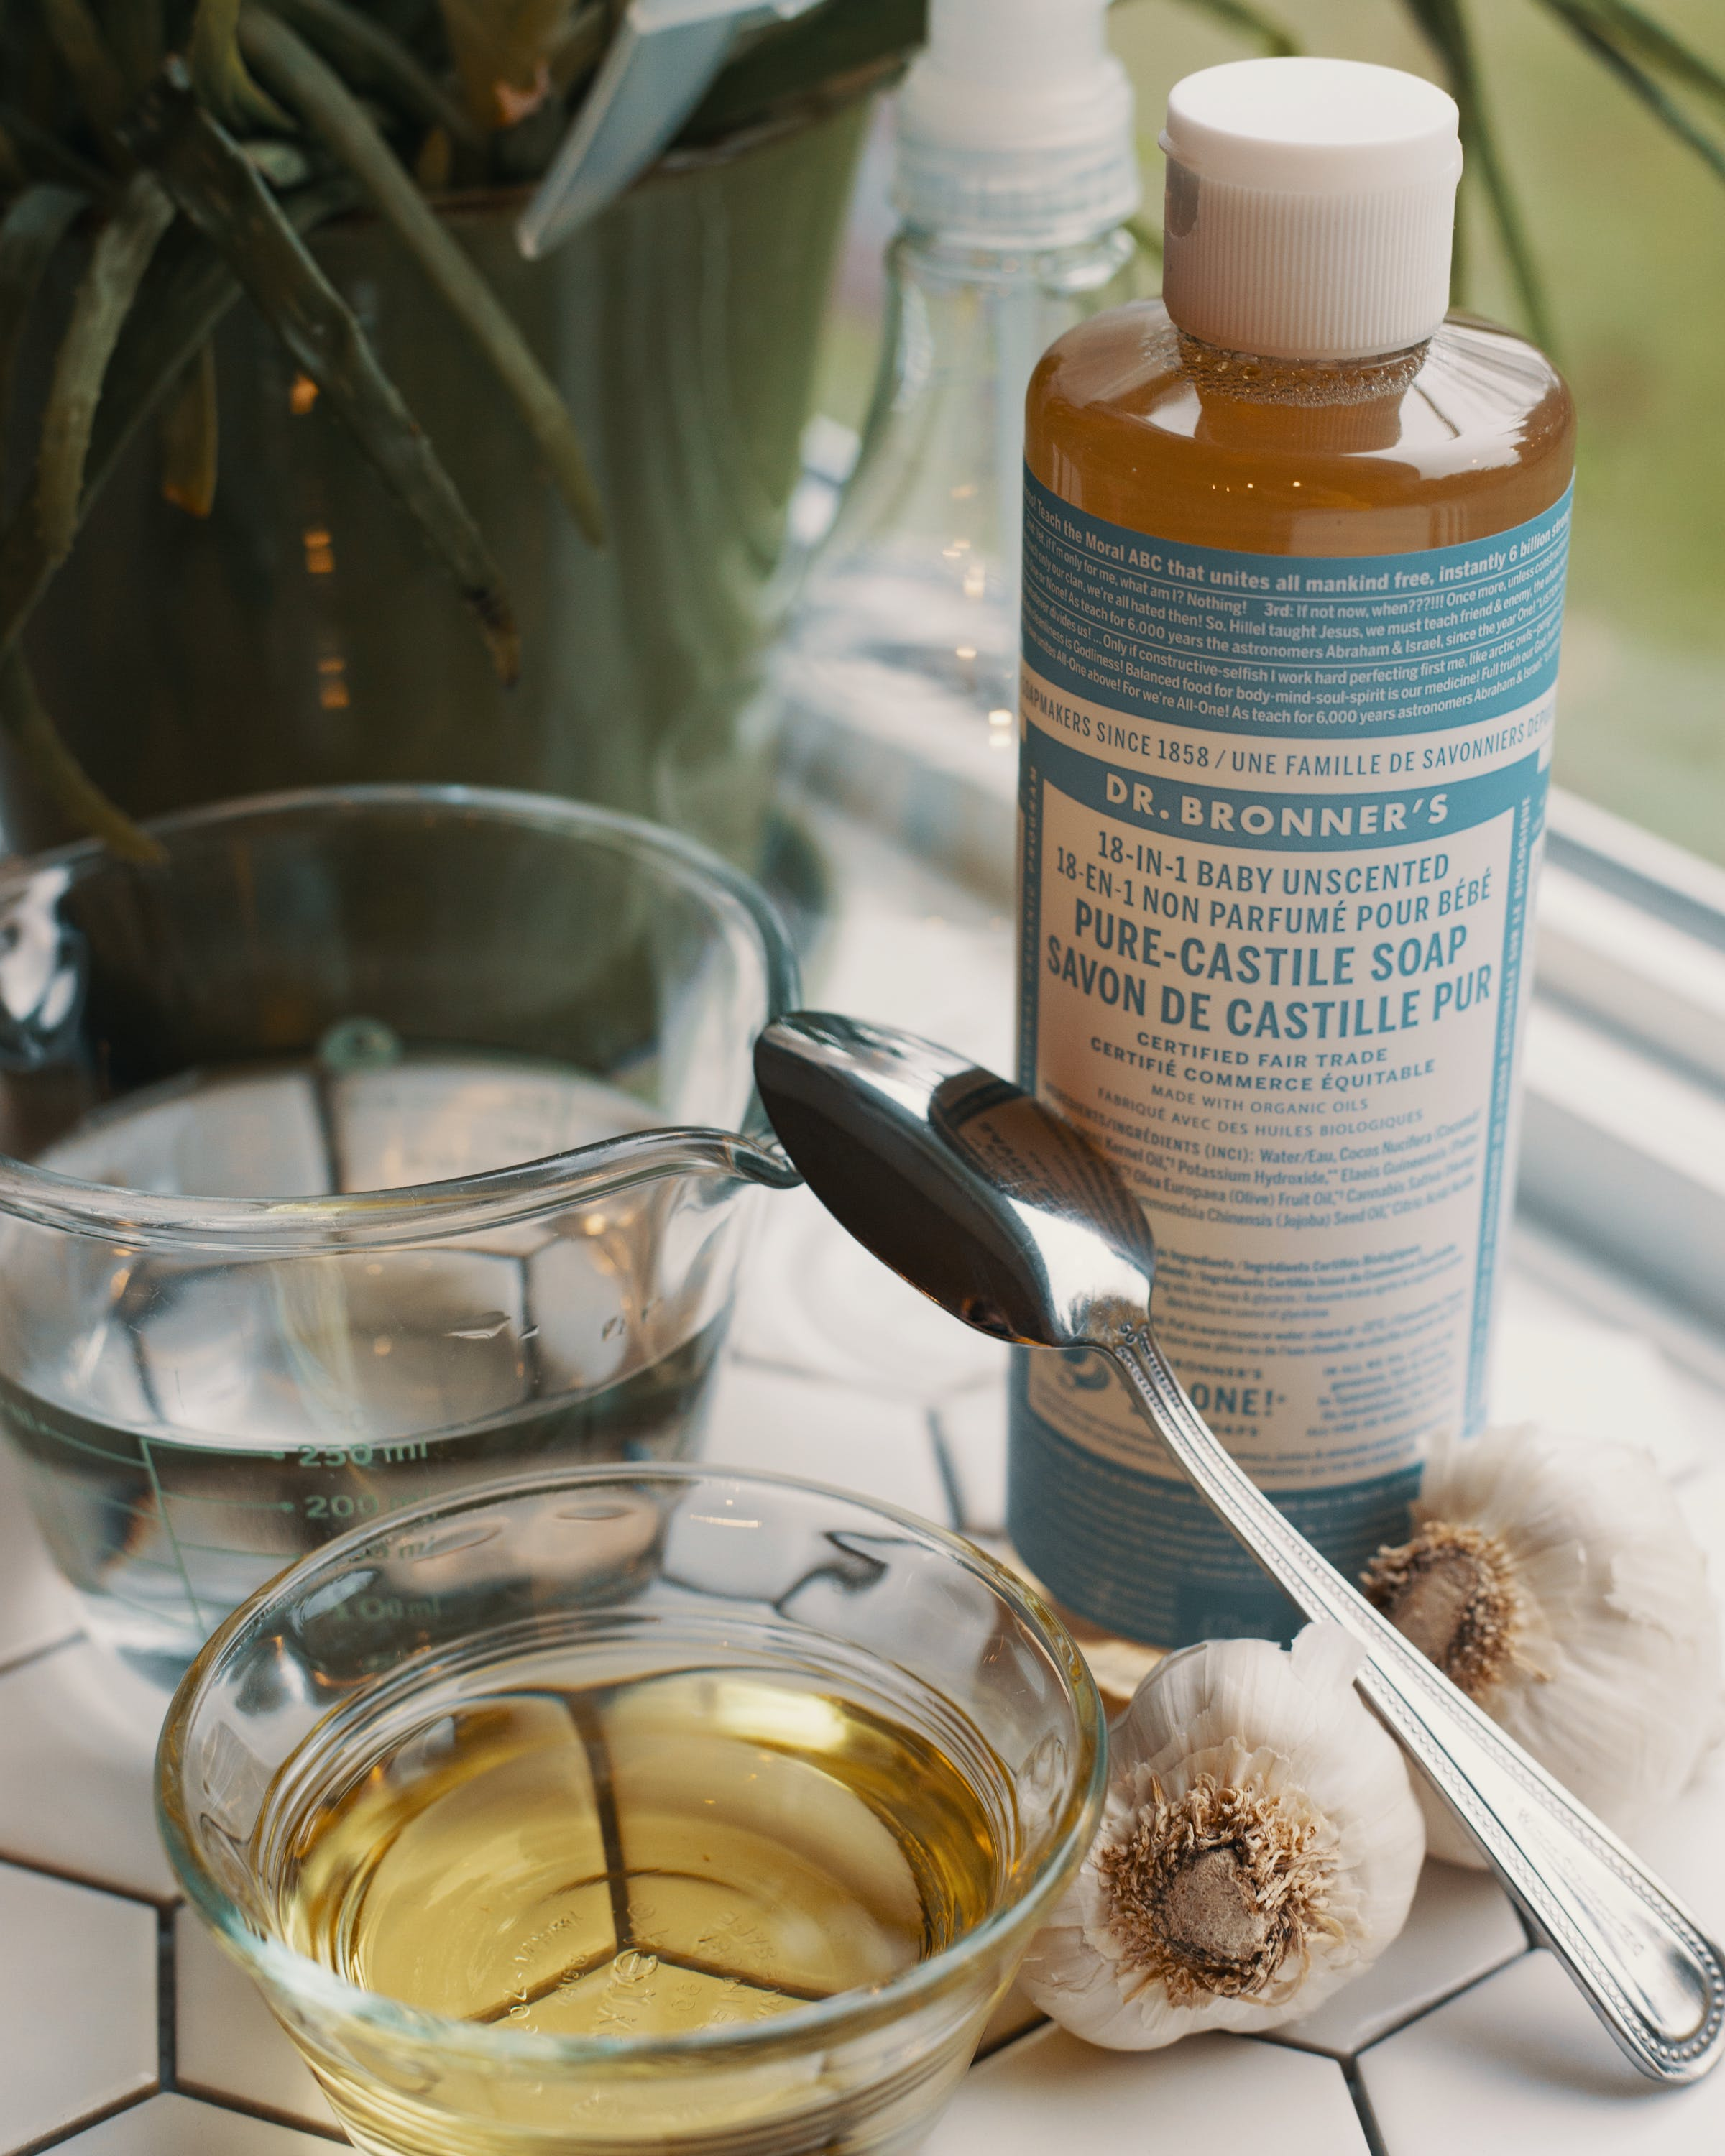 What is the Best Homemade Bug Spray for Weed Plants 4 What is the Best Homemade Bug Spray for Weed Plants?